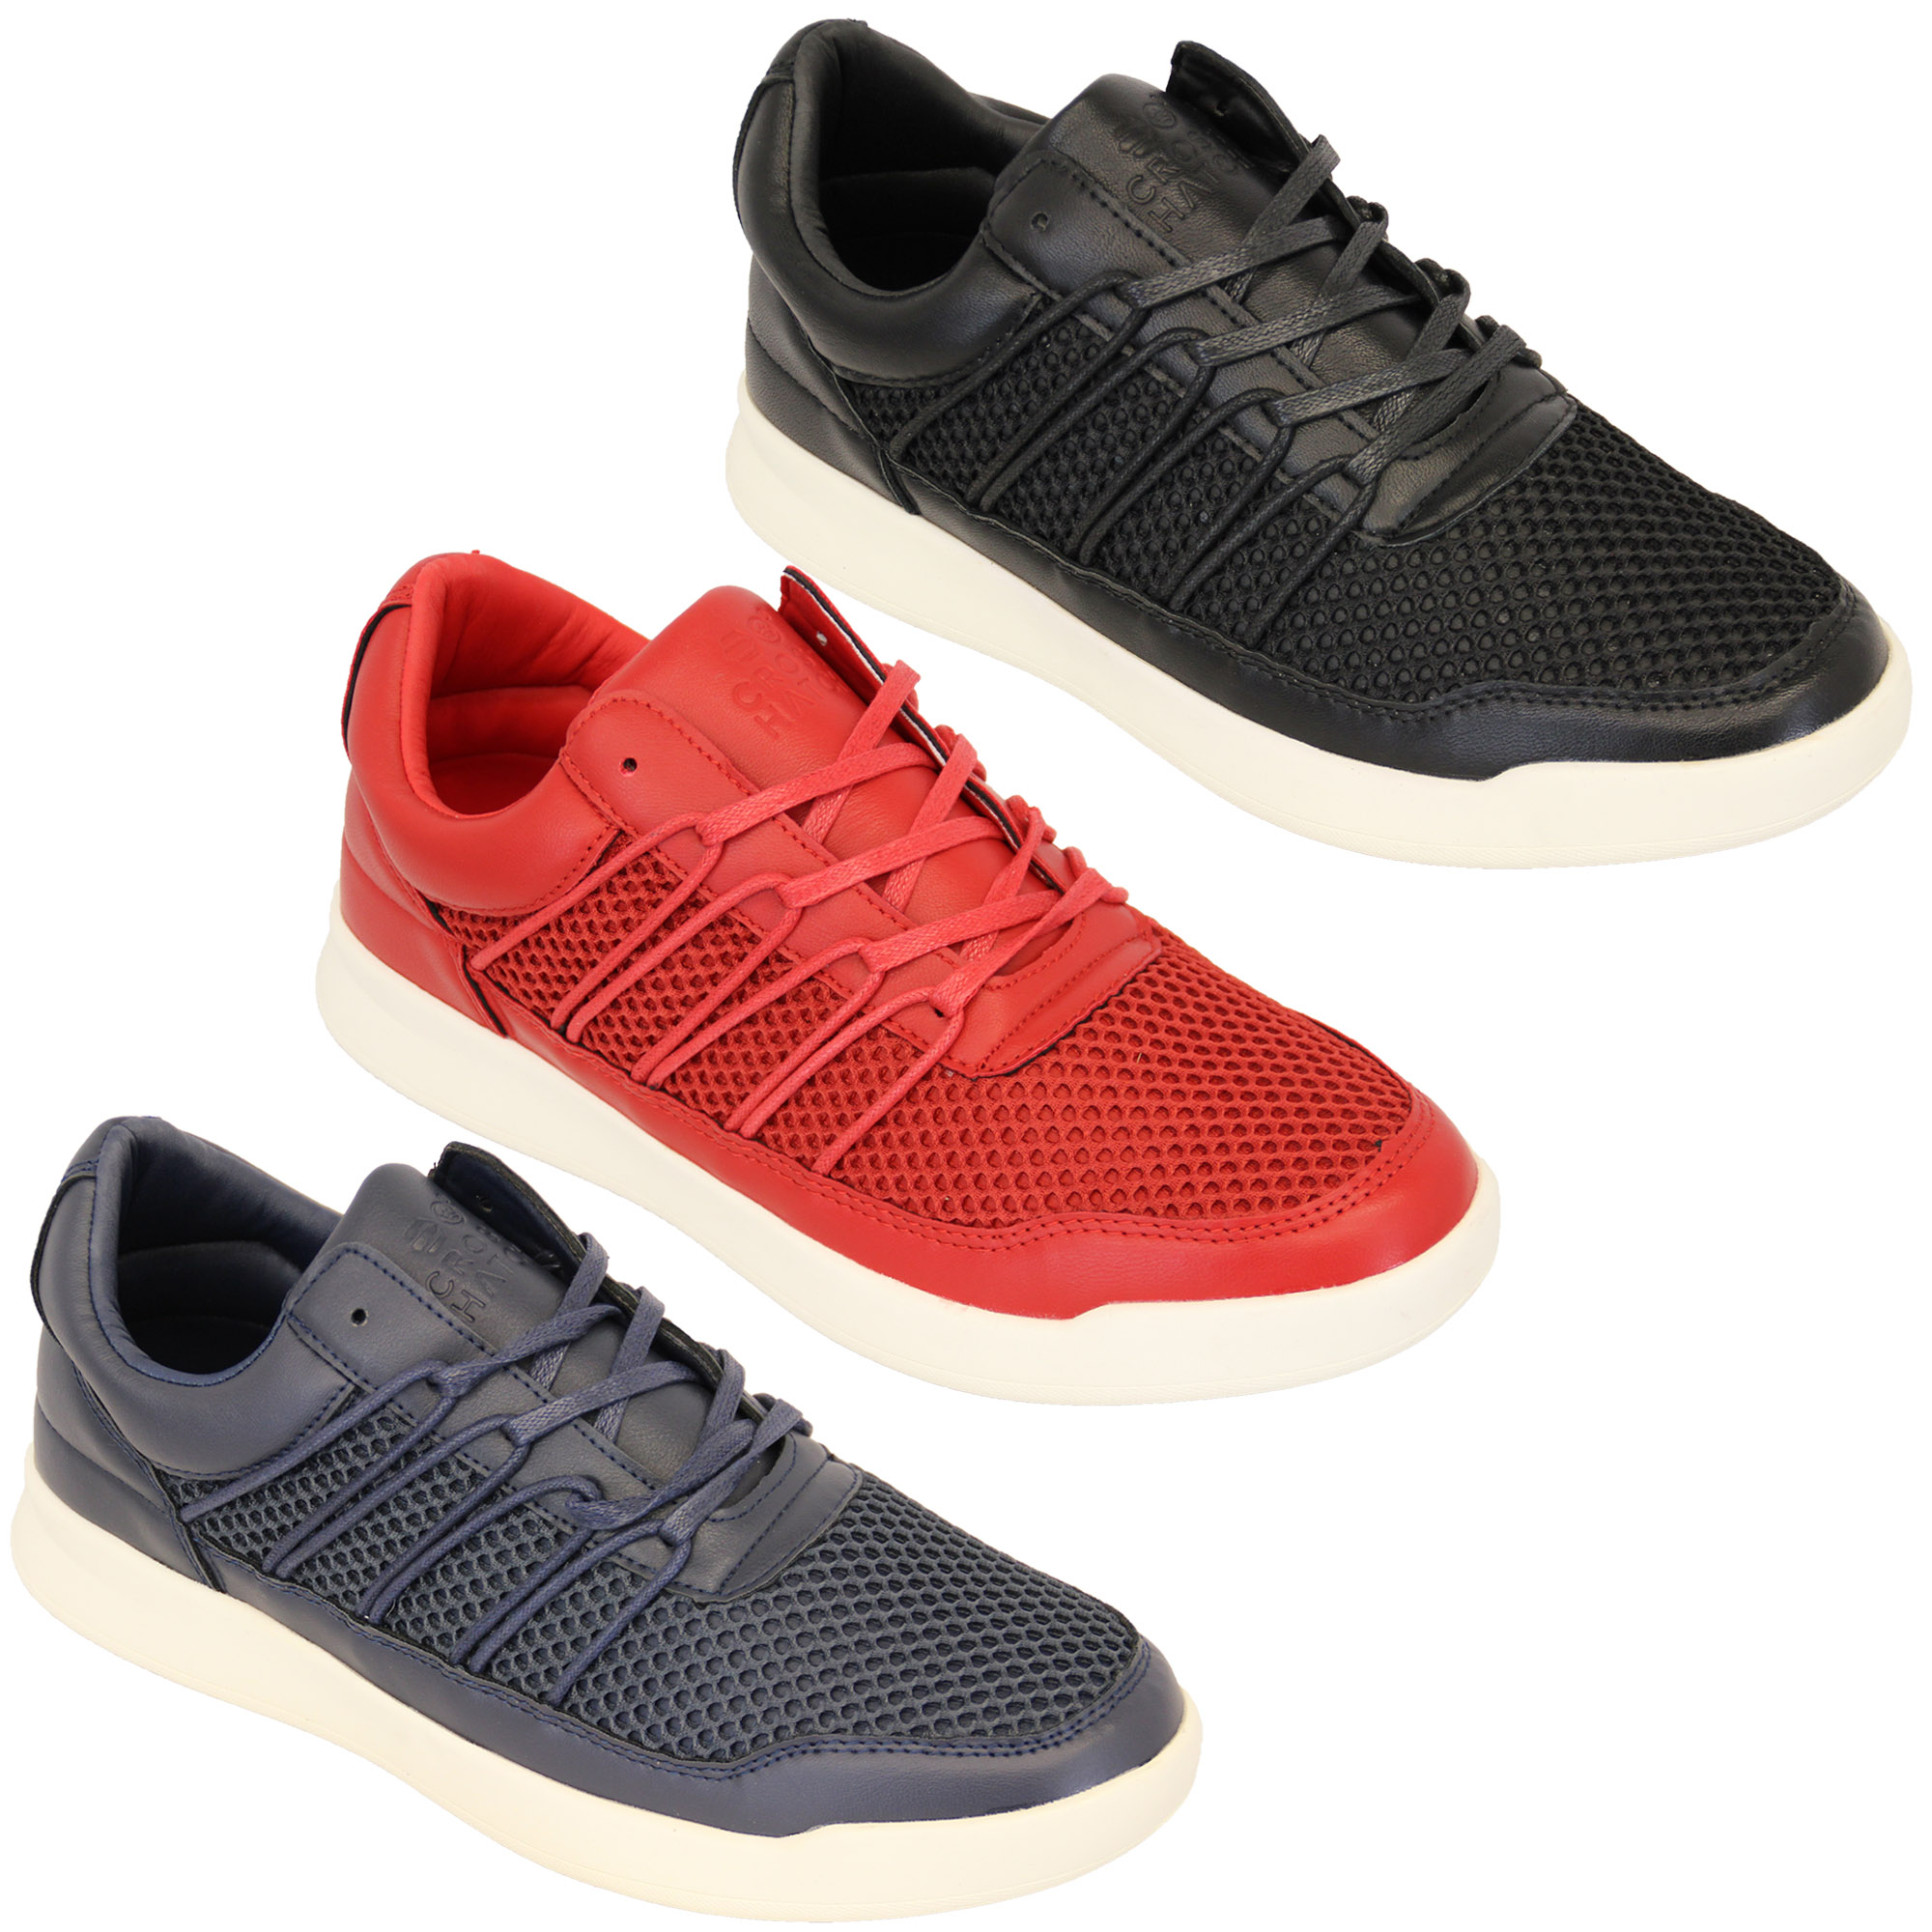 Mens-Trainers-Crosshatch-Jogging-Shoes-Lace-Up-Walking-Running-Sports-Gym-Mesh thumbnail 4